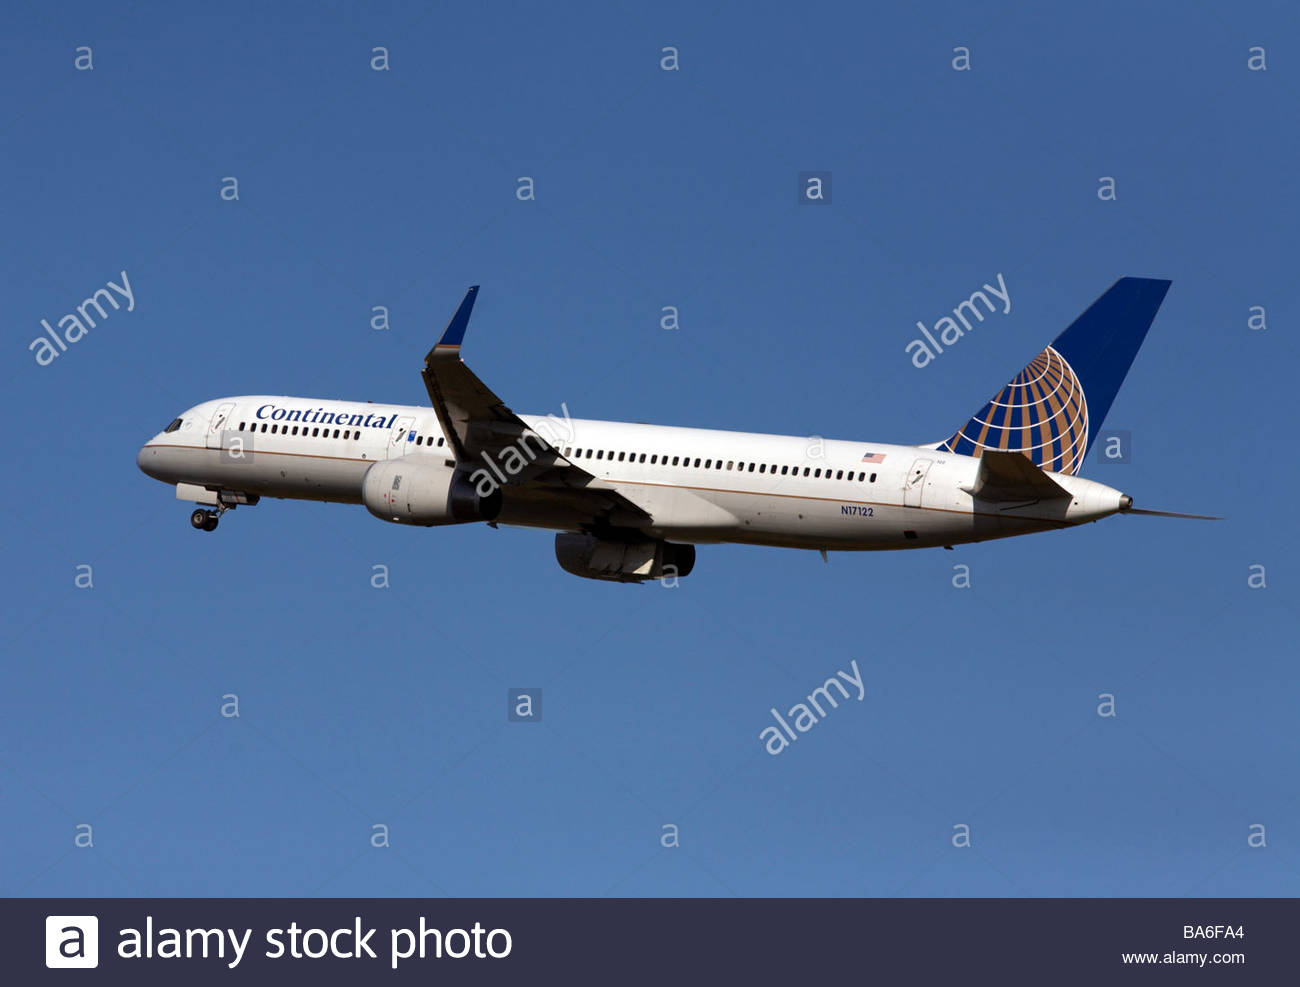 Continental airlines Boeing 757 flight shortly after takeoff Stock Photo